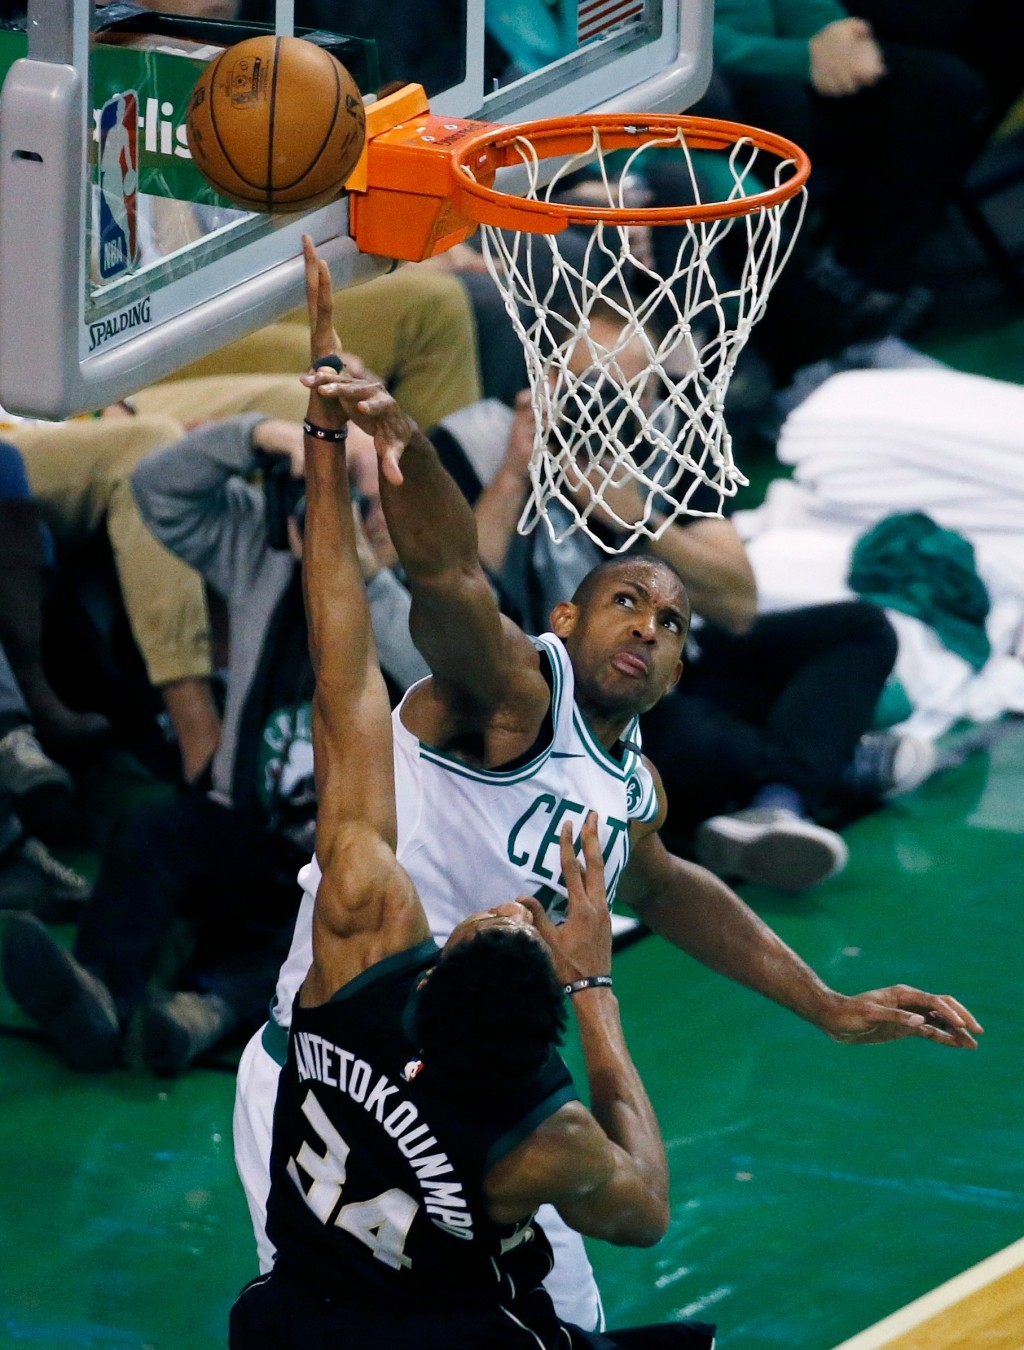 Boston Celtics' Al Horford blocks a shot by Milwaukee Bucks' Giannis Antetokounmpo (34) during the third quarter of Game 1 of an NBA basketball first-